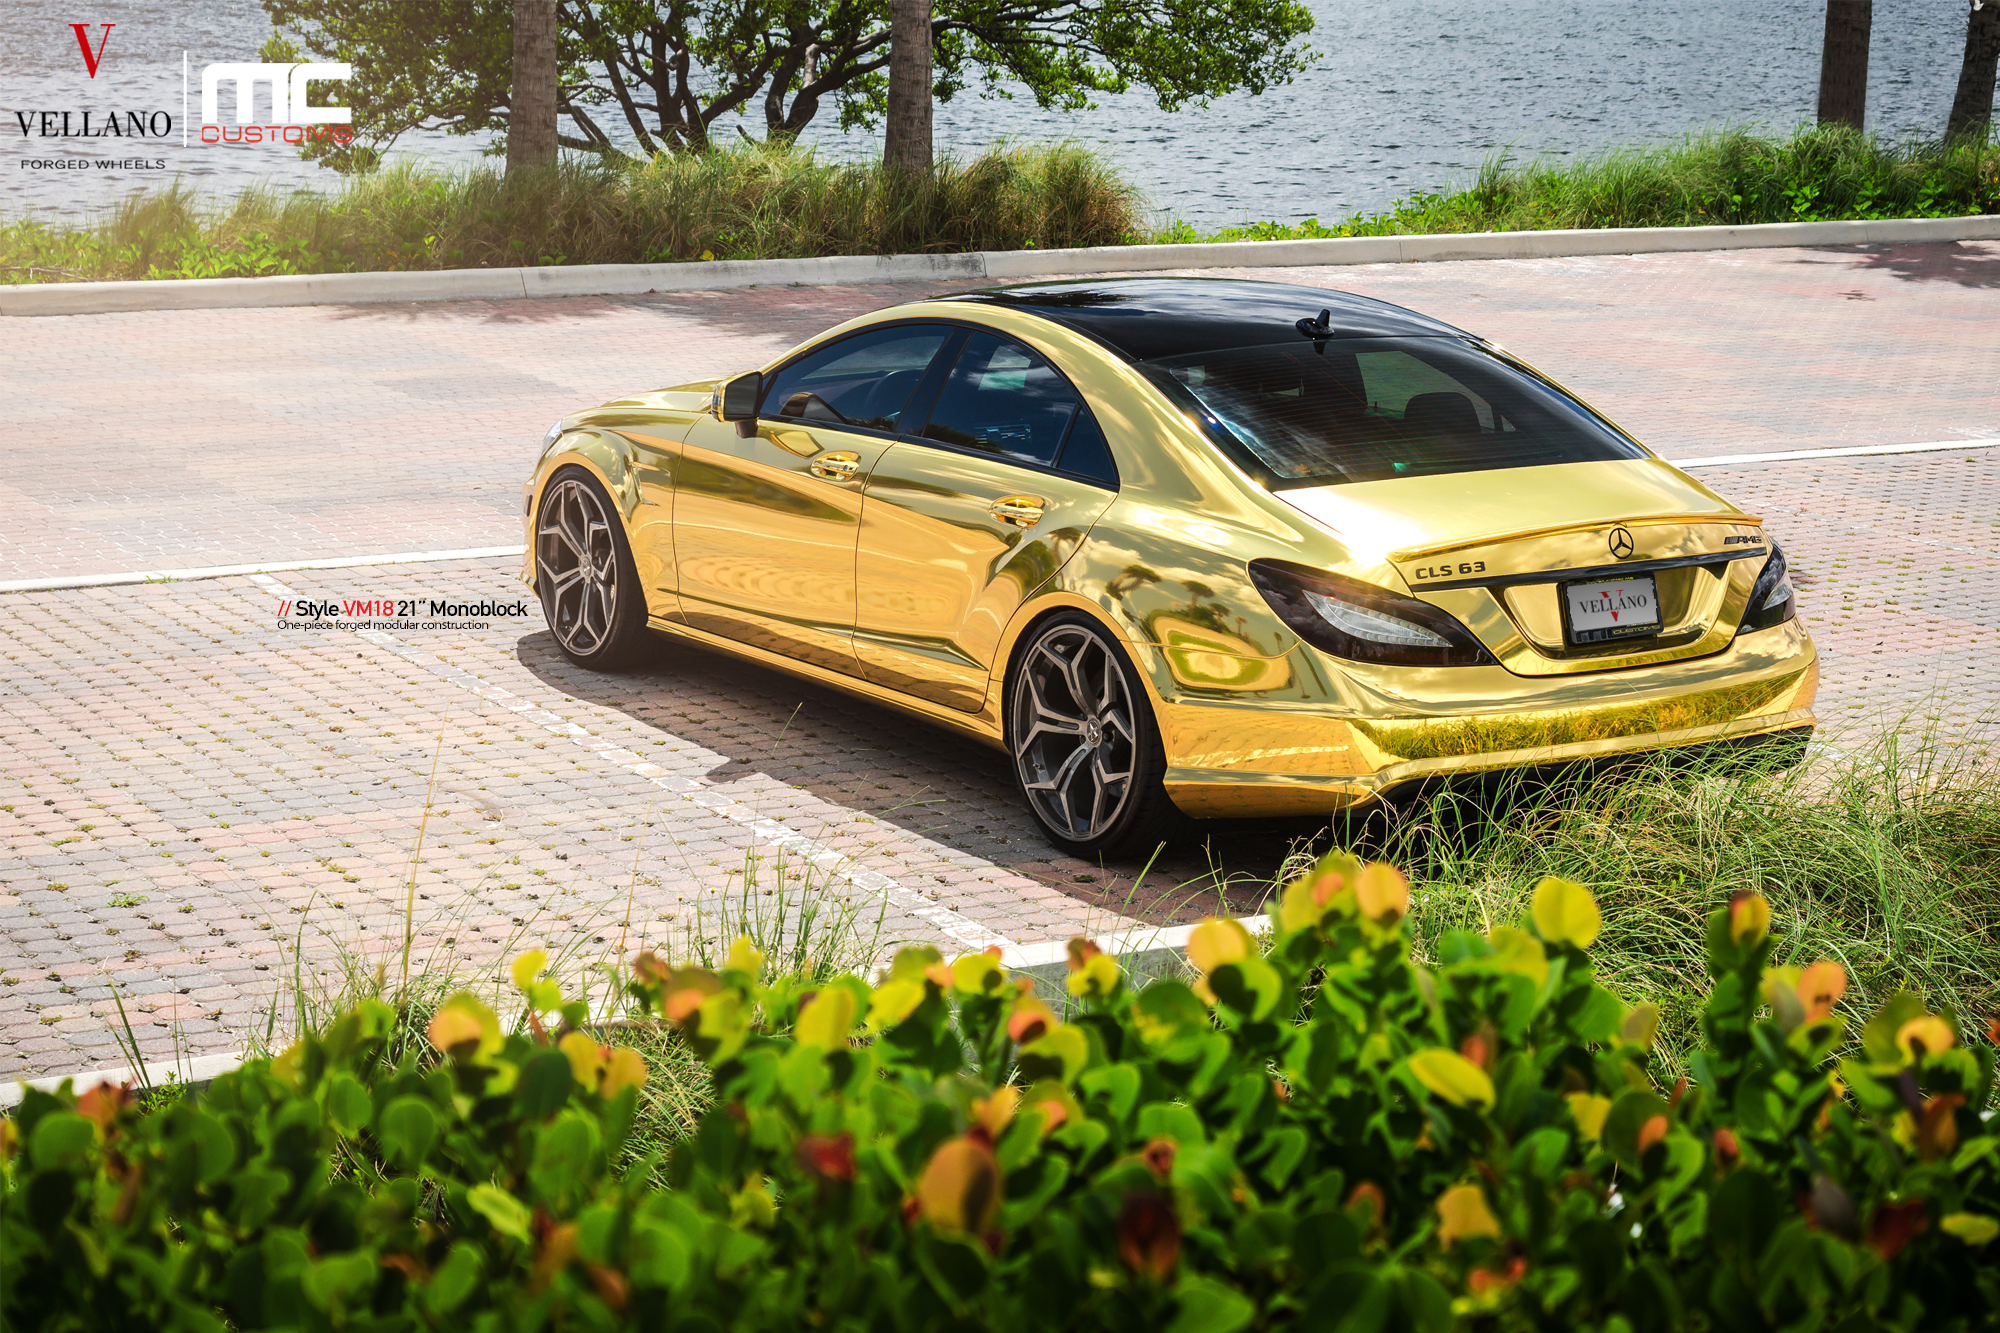 Mercedes Cls 63 Amg Makes Gold Wrap And Vellano Wheels Cool Photo Gallery 88943 on 2014 mercedes cls 63 amg